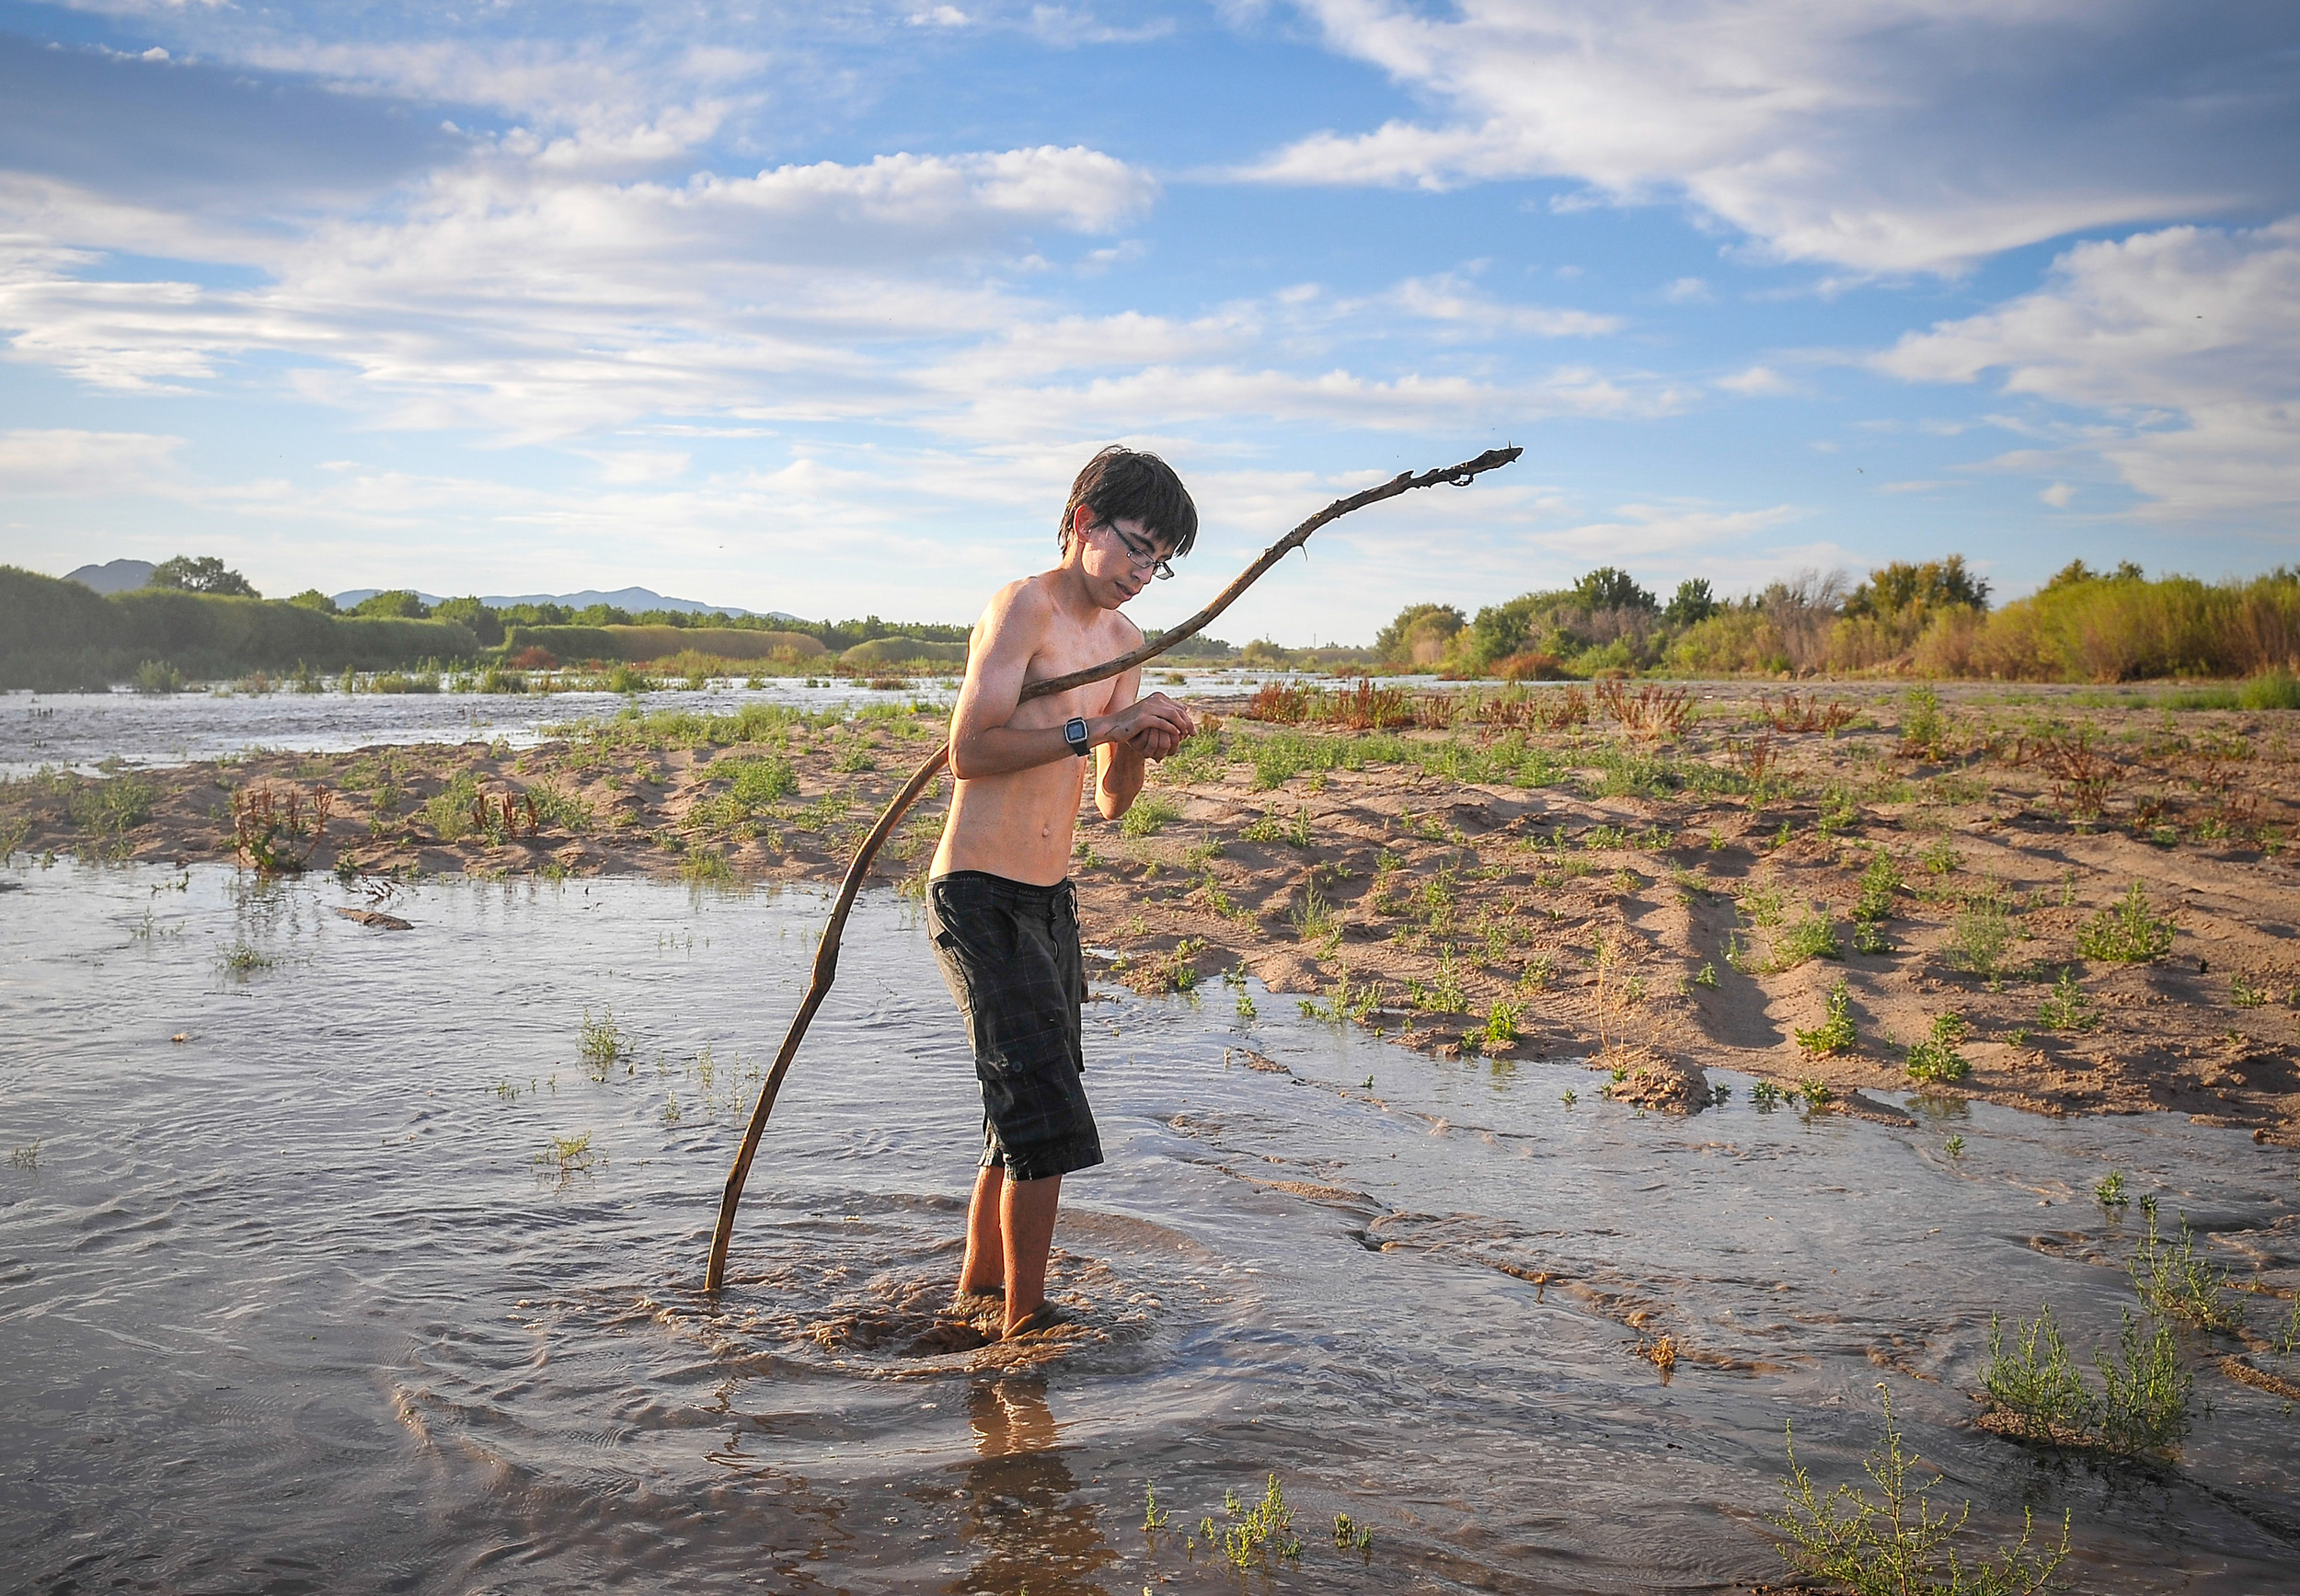 14-year-old Las Cruces native Domingo Cadena searches for toads on the Rio Grande by Bosque State Park in New Mexico as water seeps into the river for the first time this year on Wednesday, May 27th, 2015. The water, which was released by Elephant Butte and Caballo Dams, is expected to reach El Paso on Friday, May 29th, and after that Mexico.